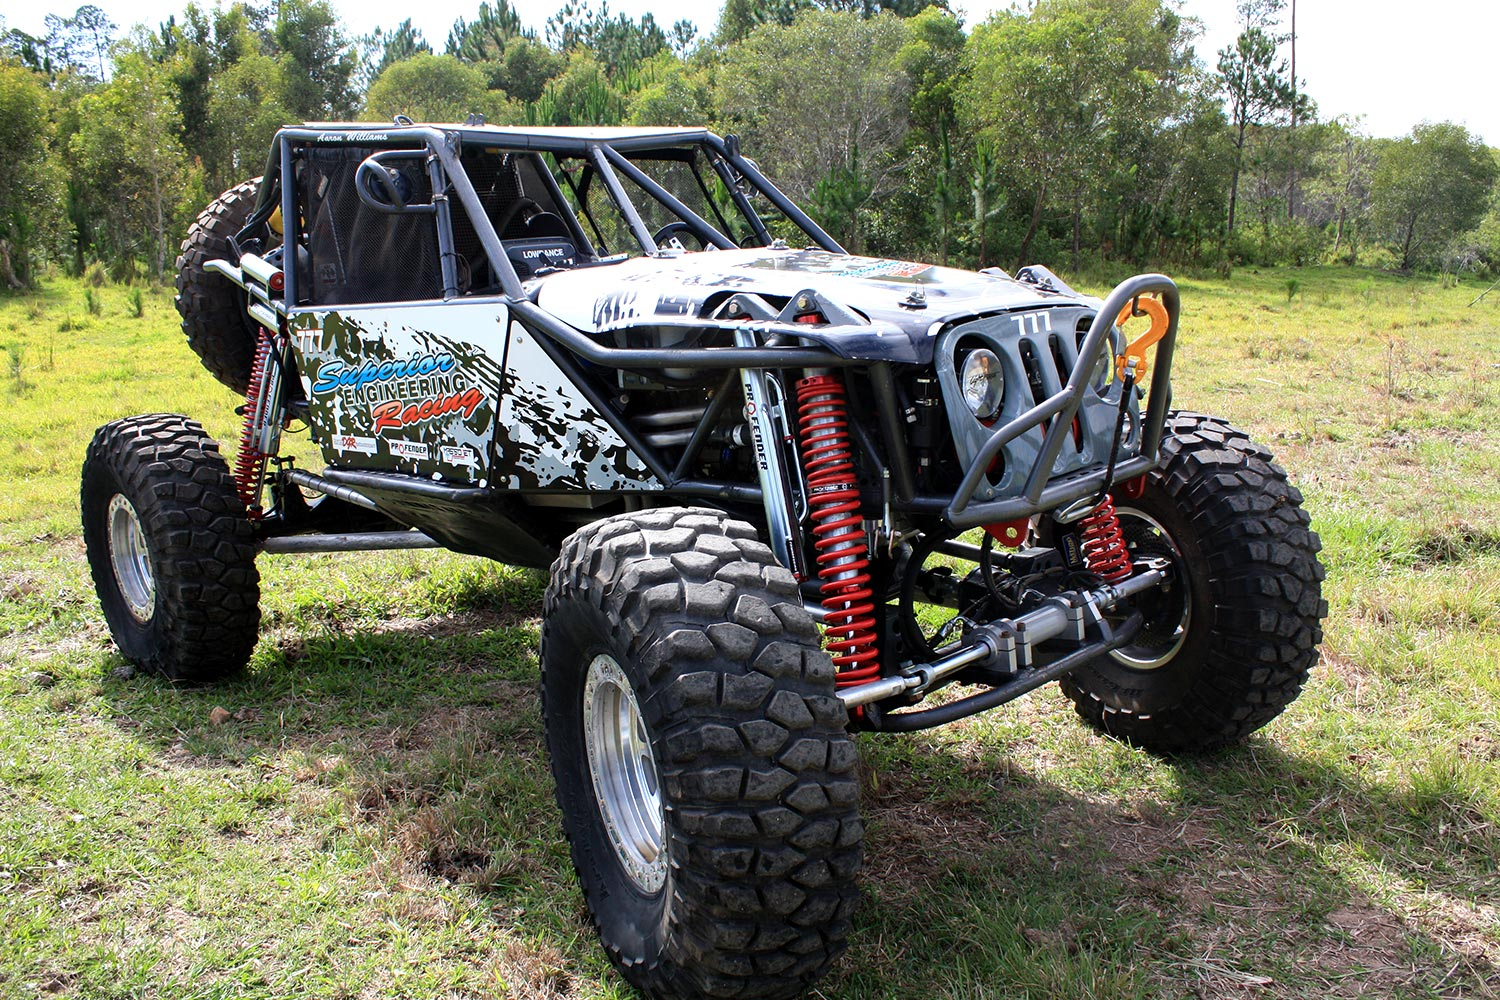 Front view of ultra4 race buggy